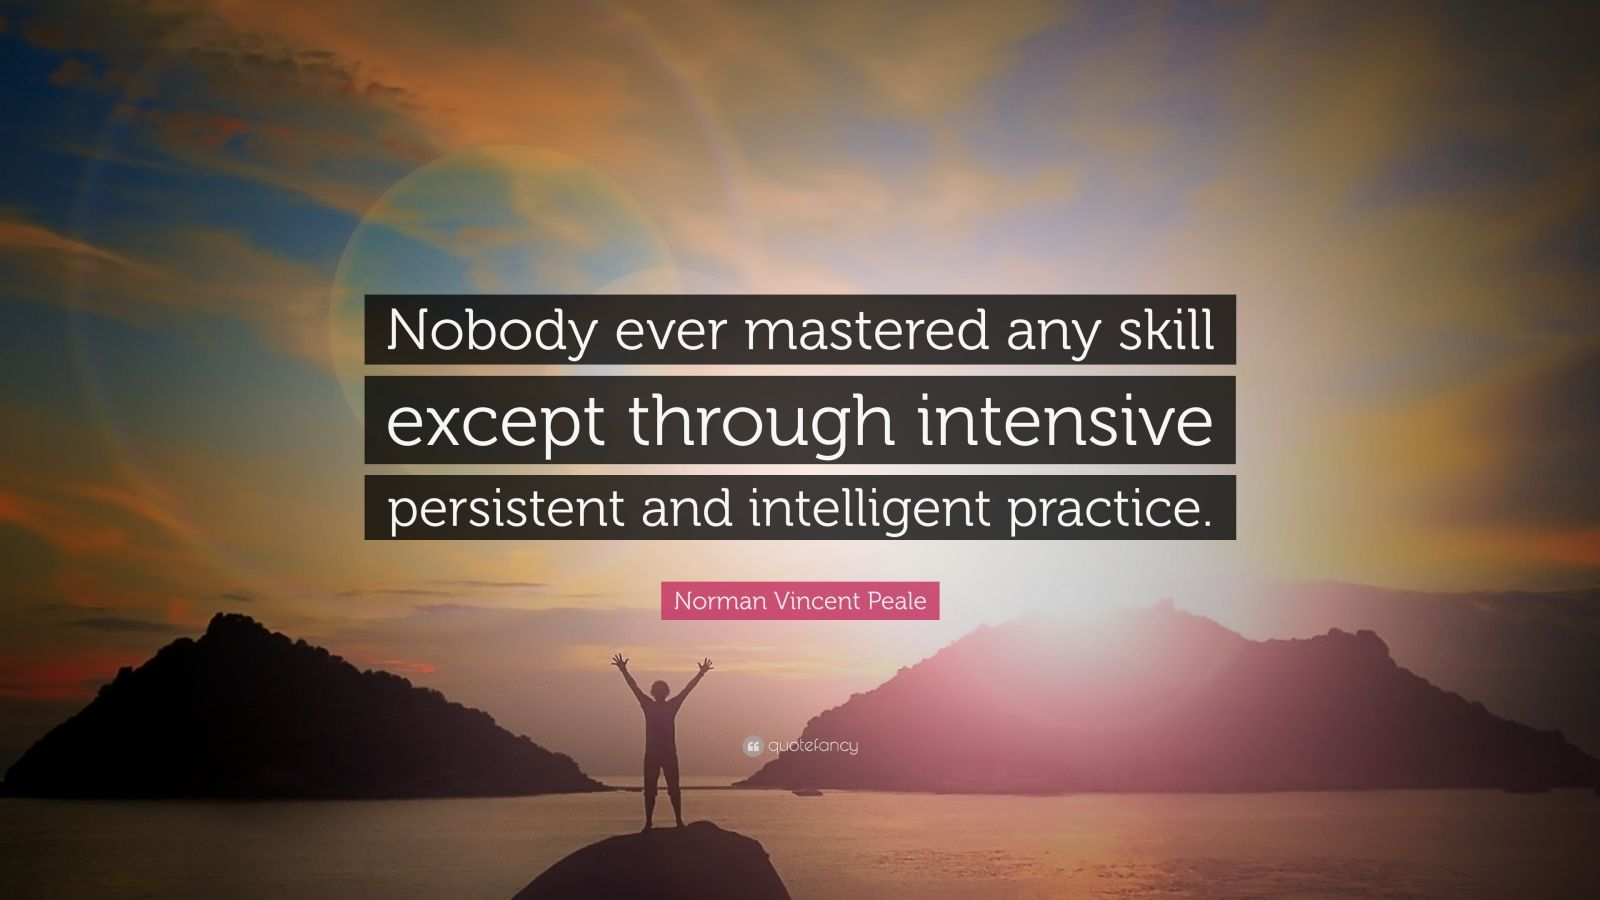 """Norman Vincent Peale Quote: """"Nobody ever mastered any skill except through intensive persistent and intelligent practice."""""""